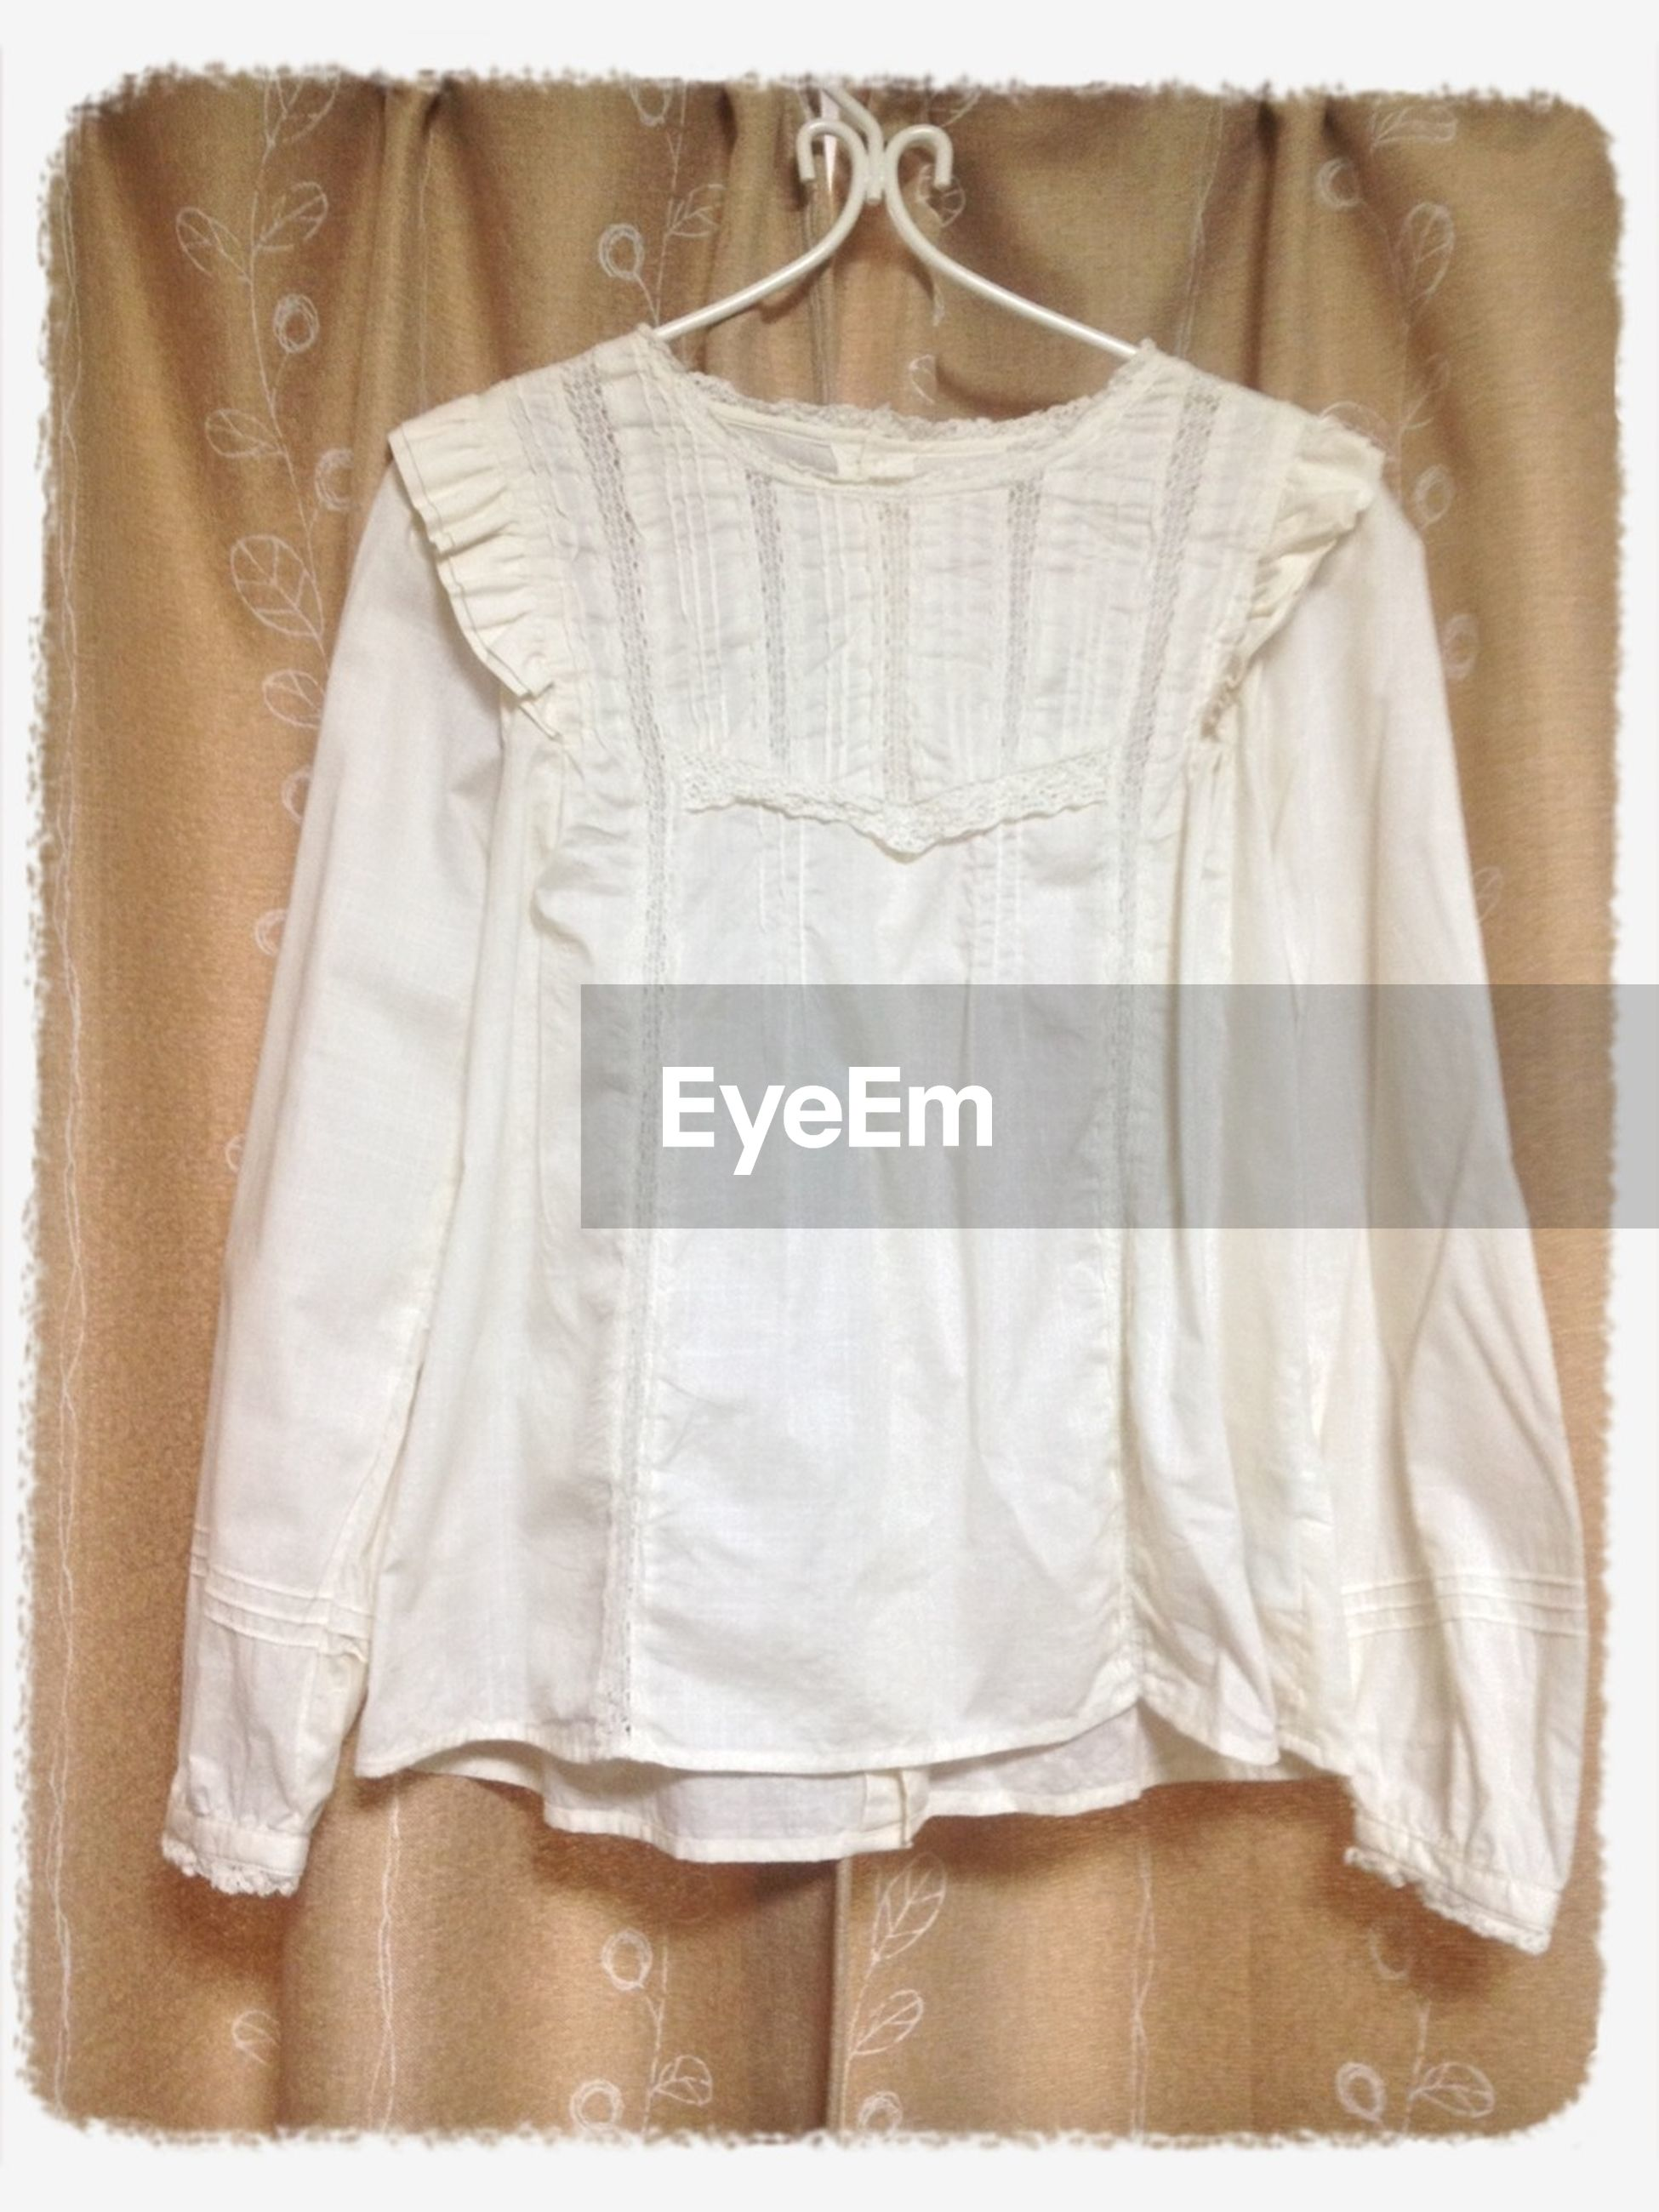 indoors, textile, clothing, fabric, midsection, fashion, curtain, hanging, white color, transfer print, person, standing, casual clothing, men, religion, shirt, auto post production filter, close-up